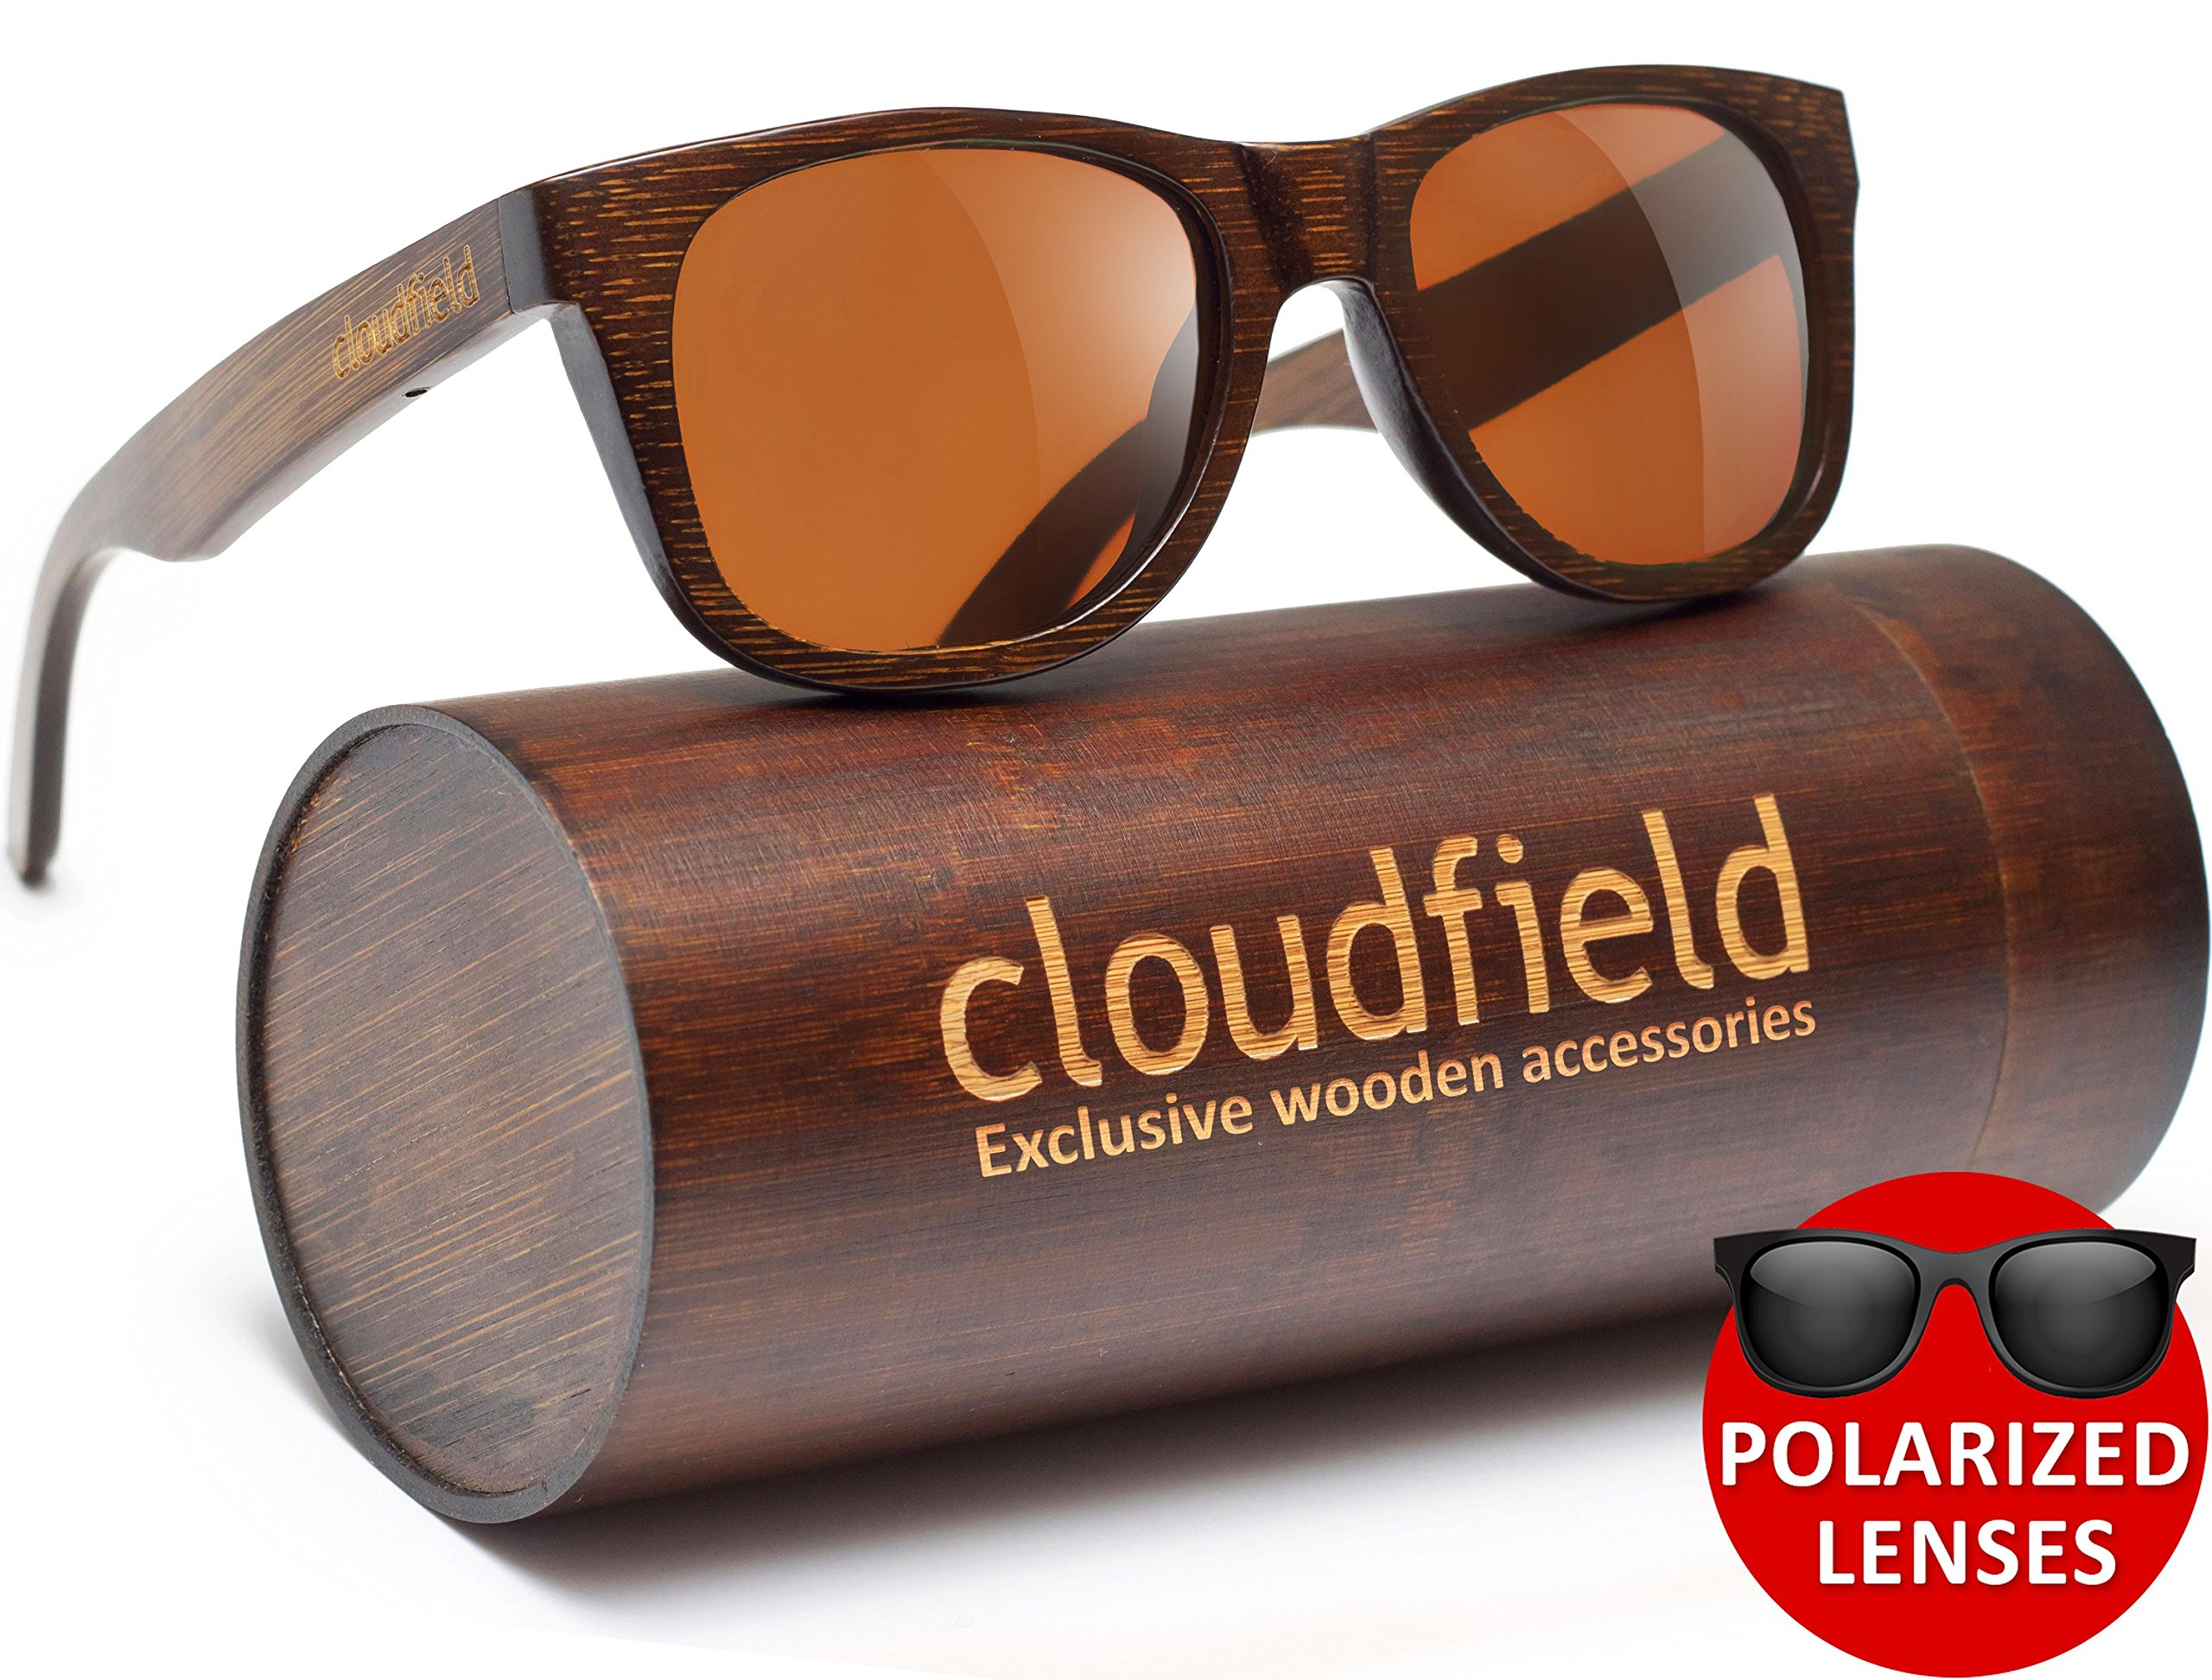 ad25a4052a Get Quotations · Wood Sunglasses Polarized for Men and Women by CLOUDFIELD  - Wooden Wayfarer Style - 100%